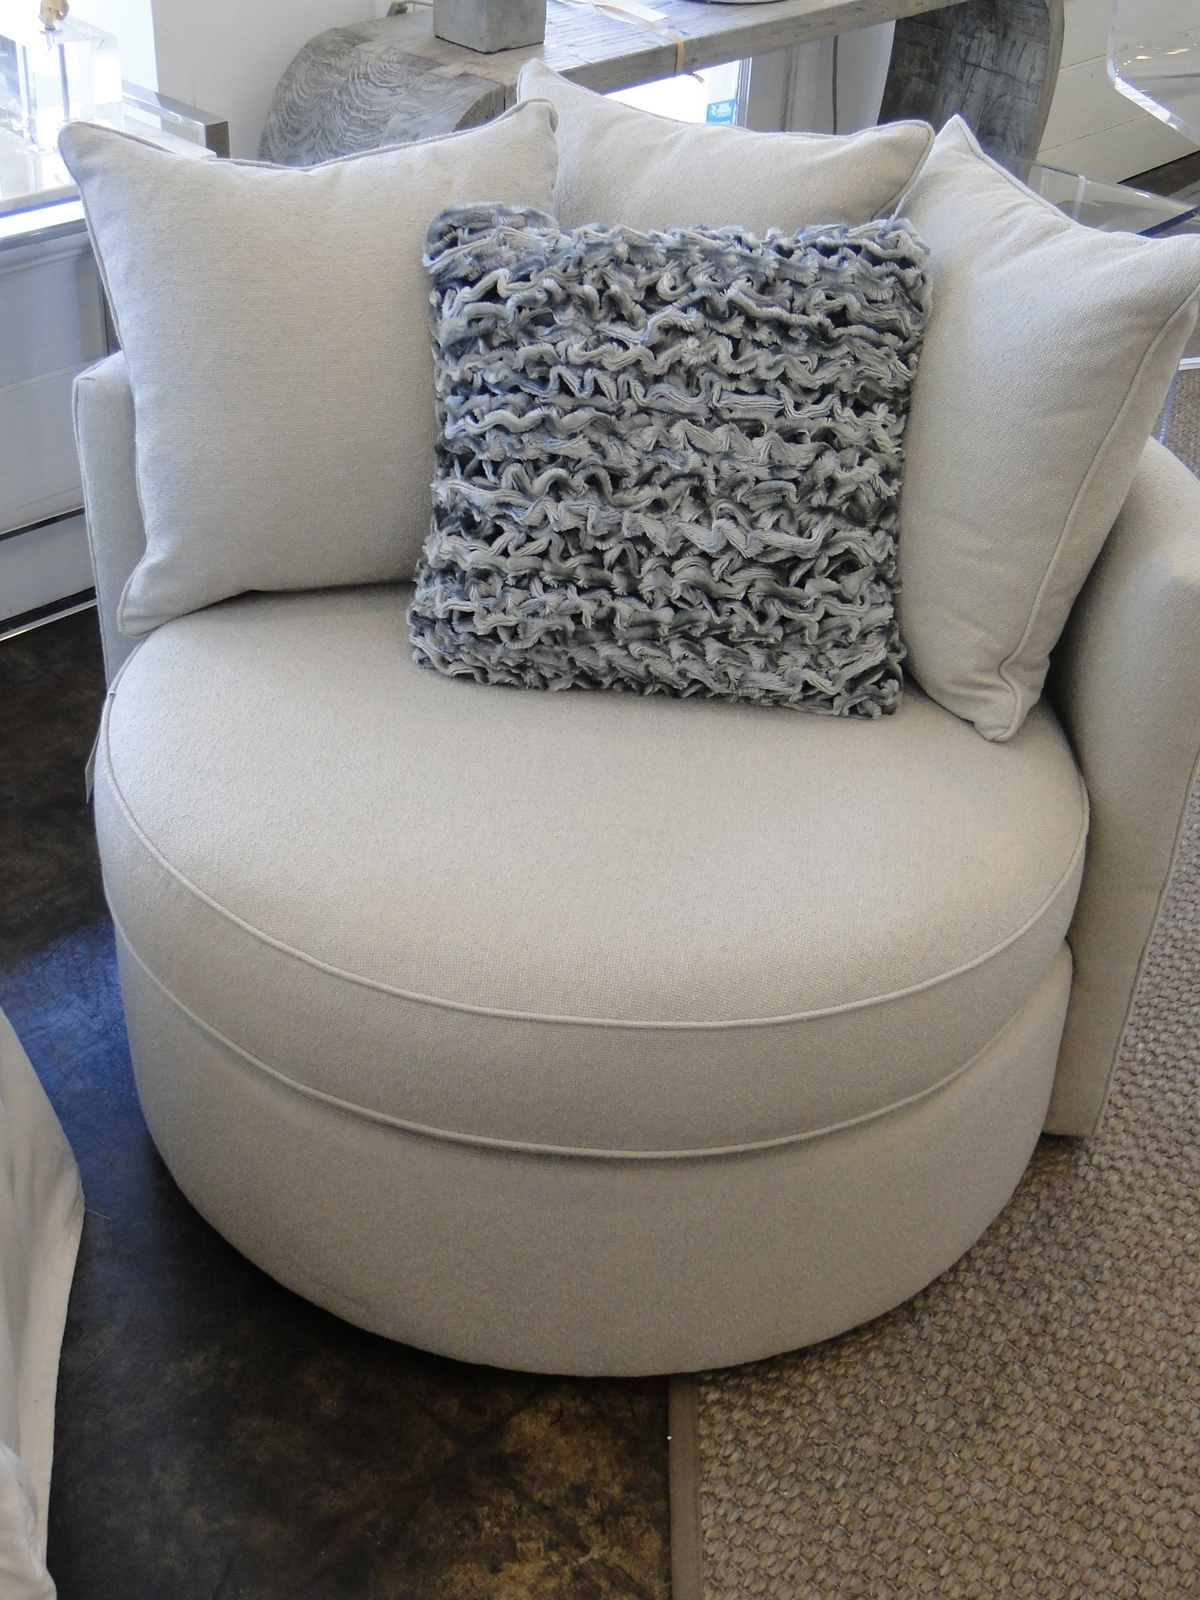 Furniture Sophisticated Oversized Round Swivel Chair With With Round Swivel Sofa Chairs (Image 3 of 15)